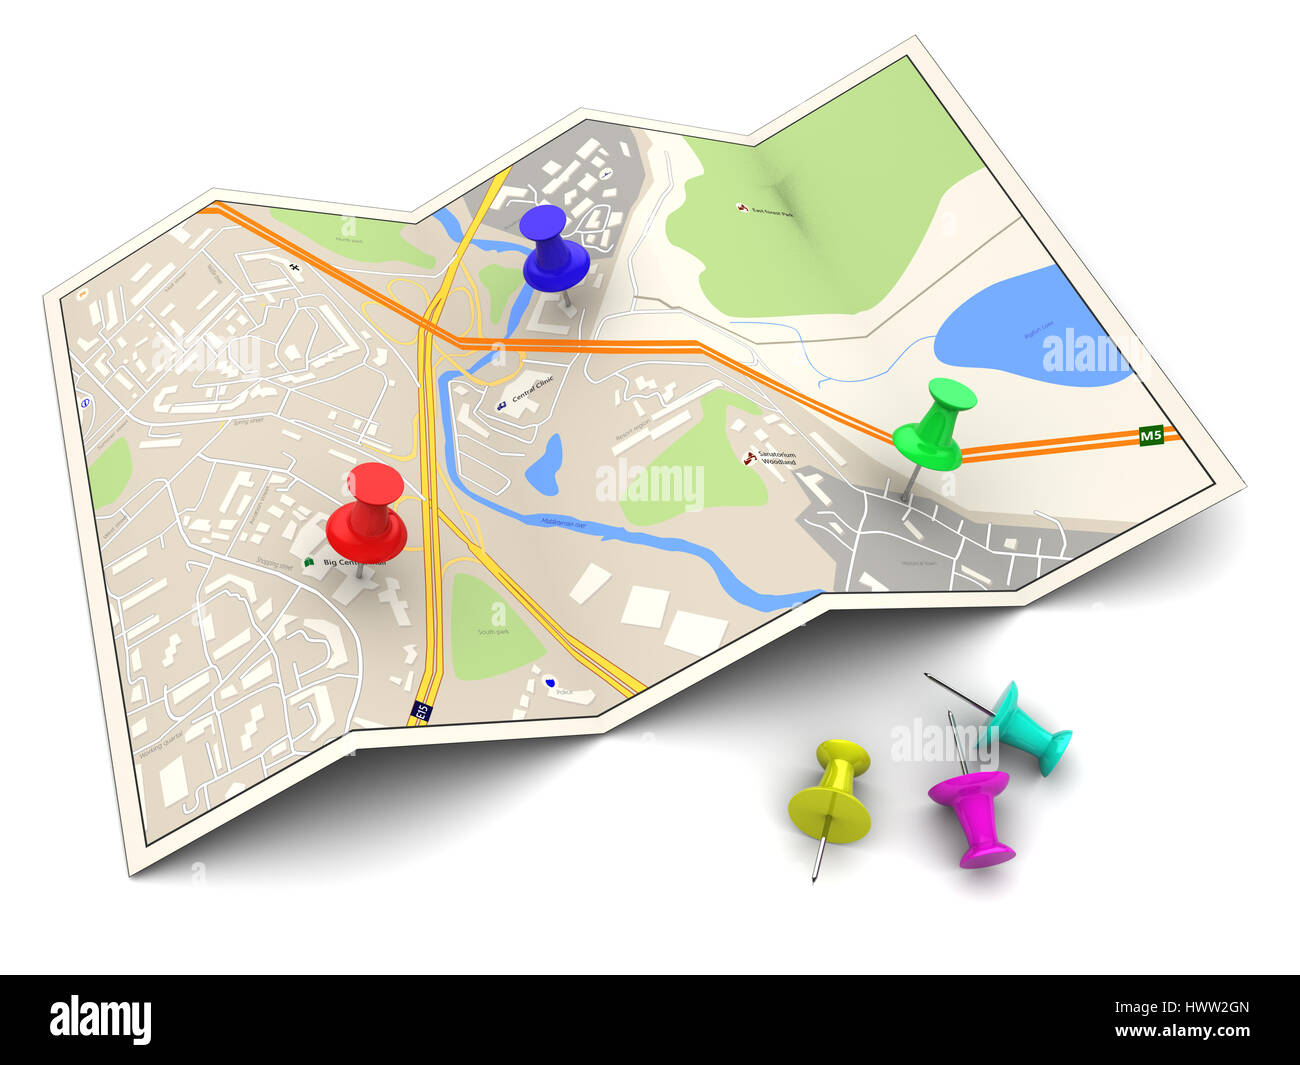 3d illustration of city map with colorful pins Stock Photo